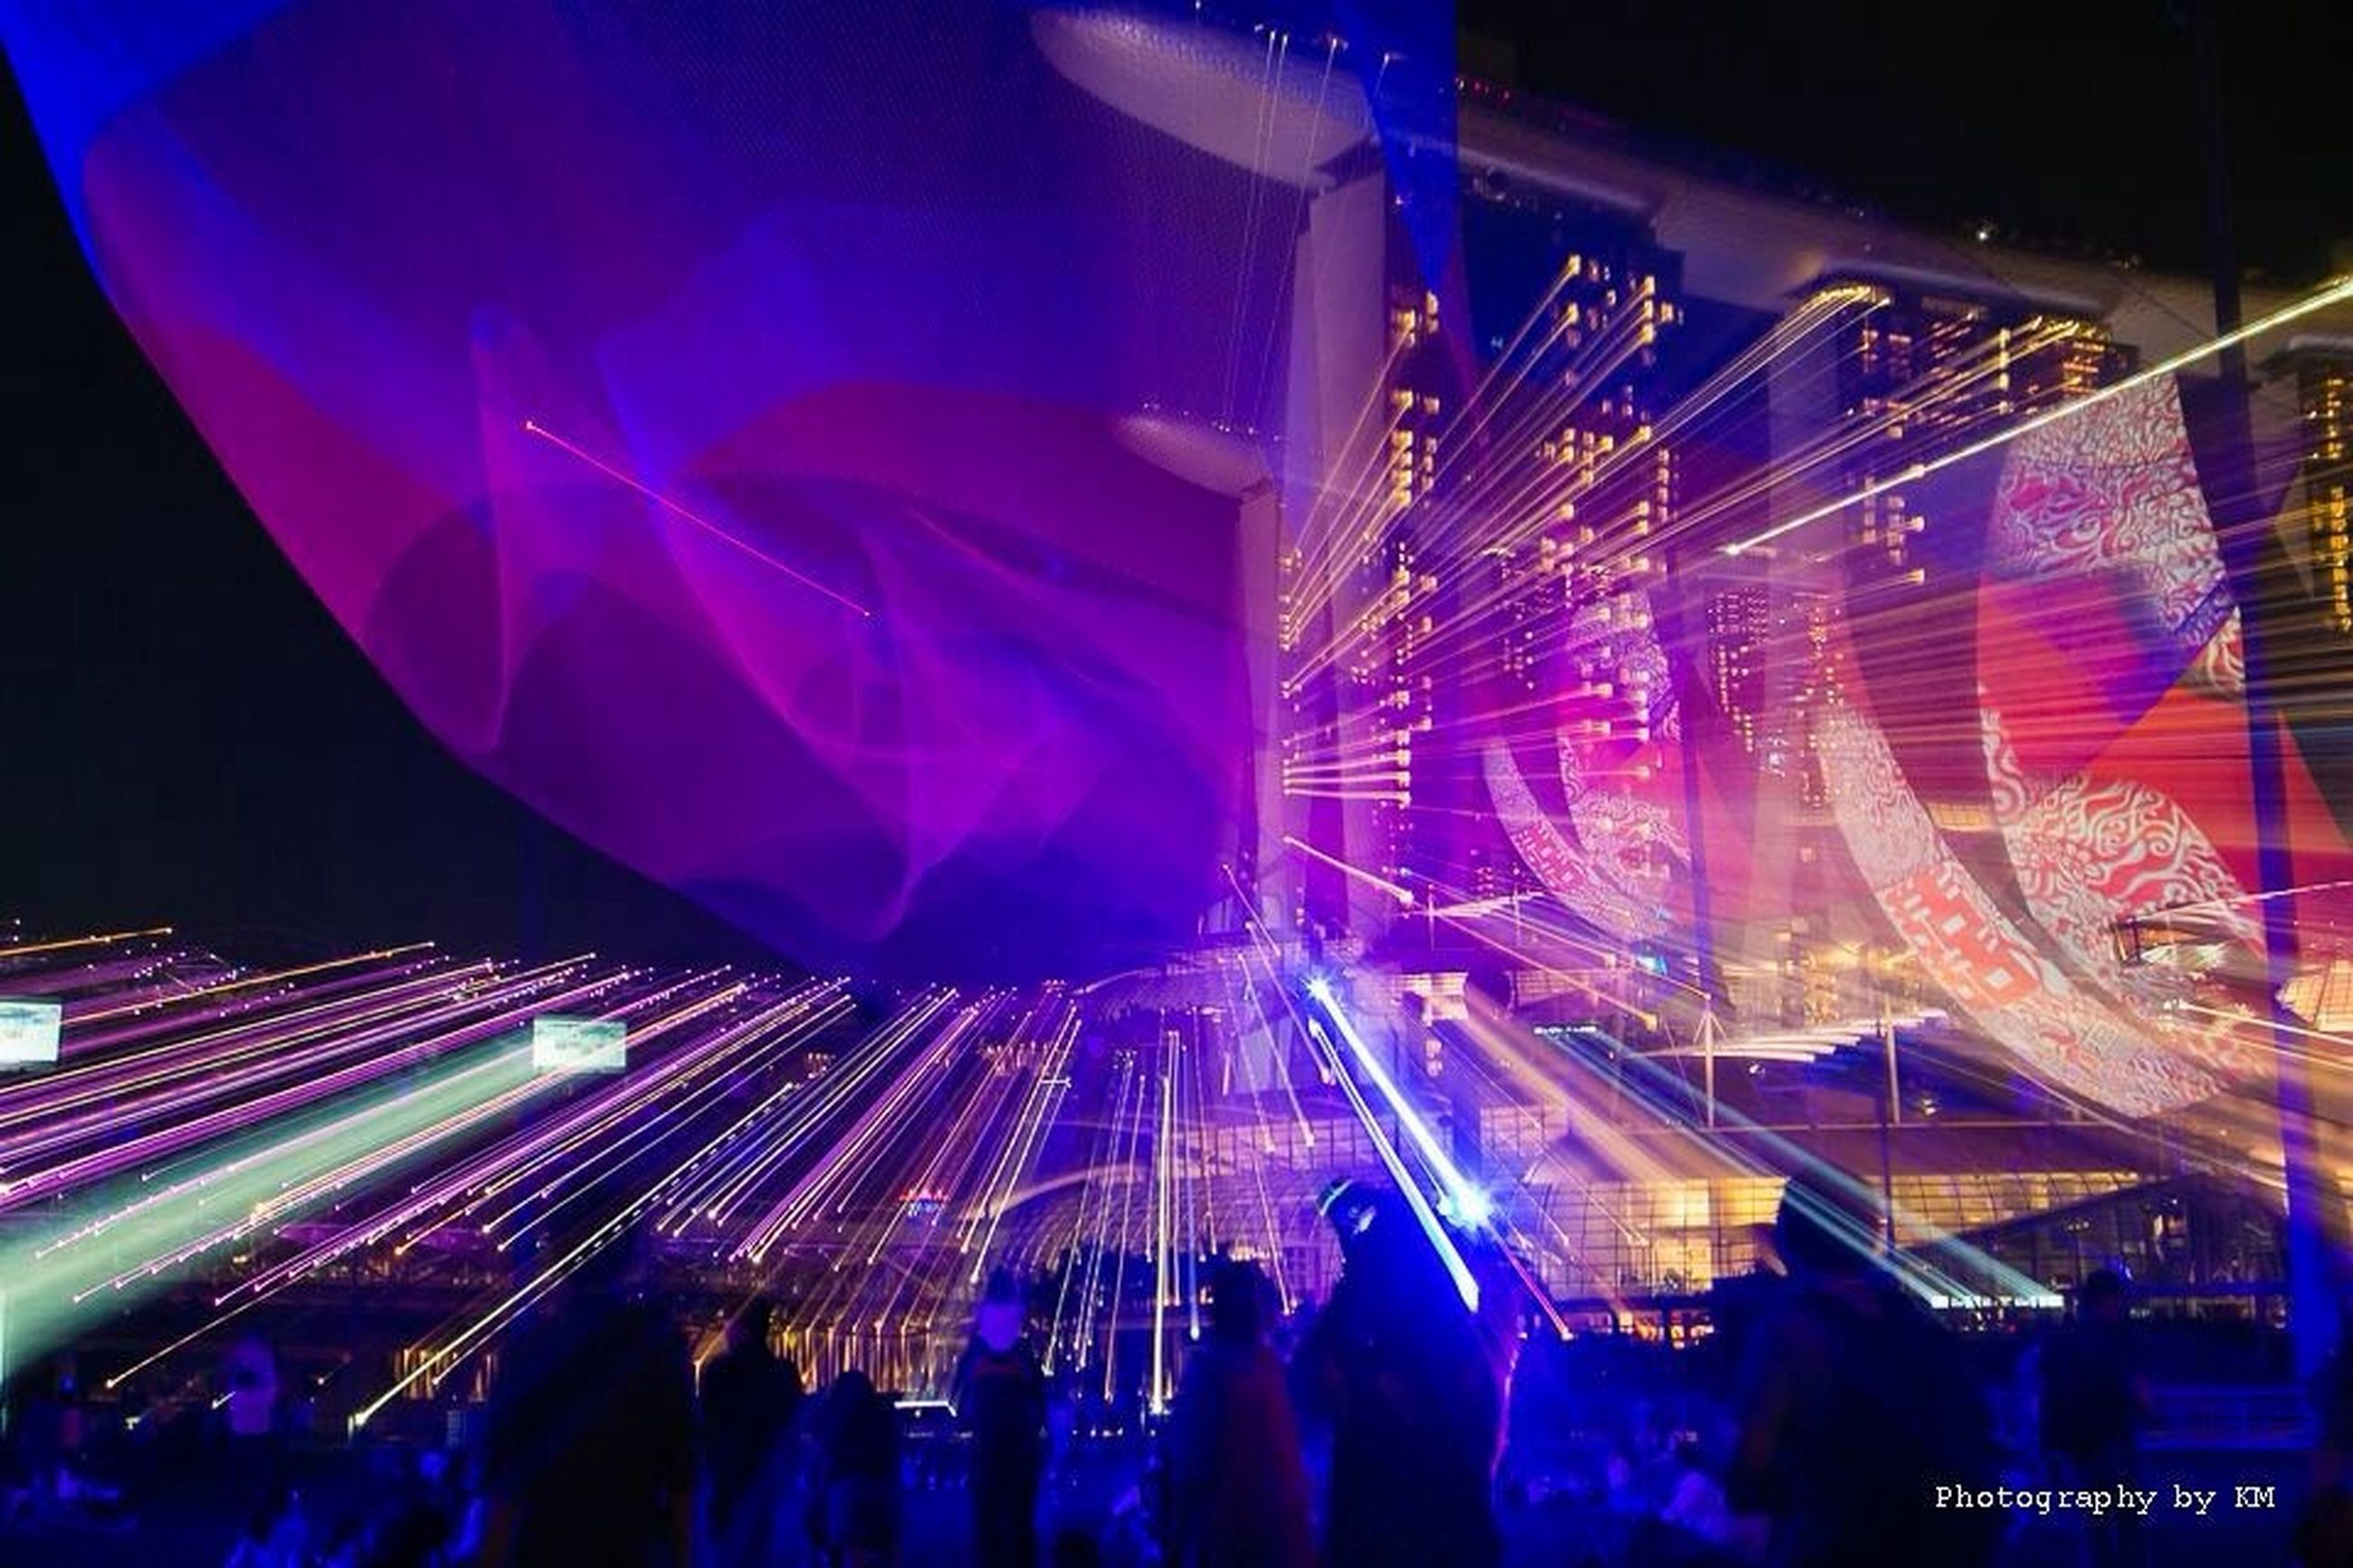 illuminated, large group of people, night, arts culture and entertainment, lifestyles, leisure activity, enjoyment, event, men, crowd, nightlife, fun, person, celebration, music, excitement, youth culture, stage - performance space, motion